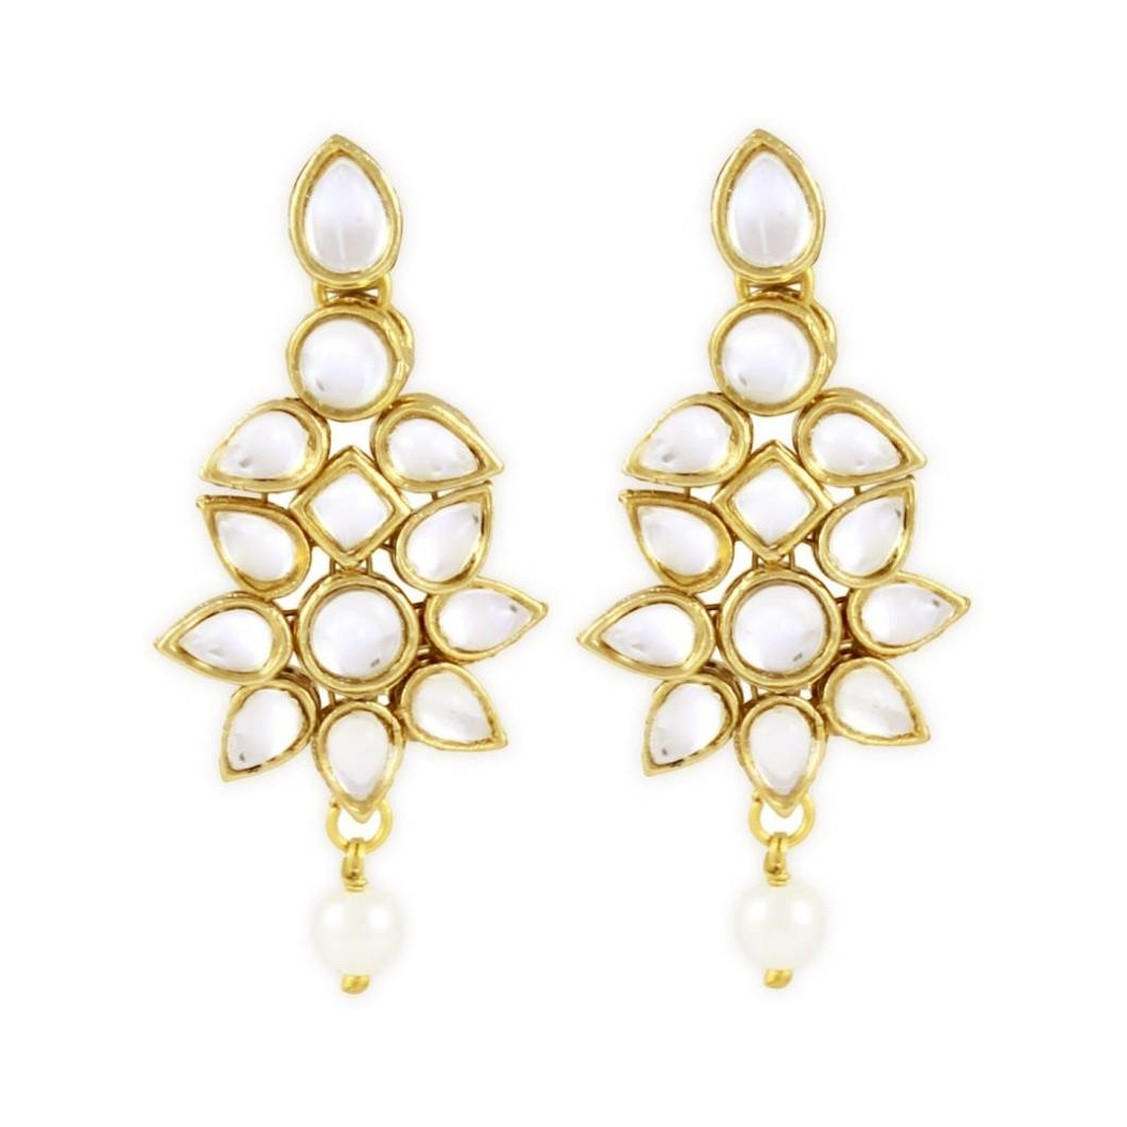 Kundan Stone Earrings Golden Color For Woman & Girls 08